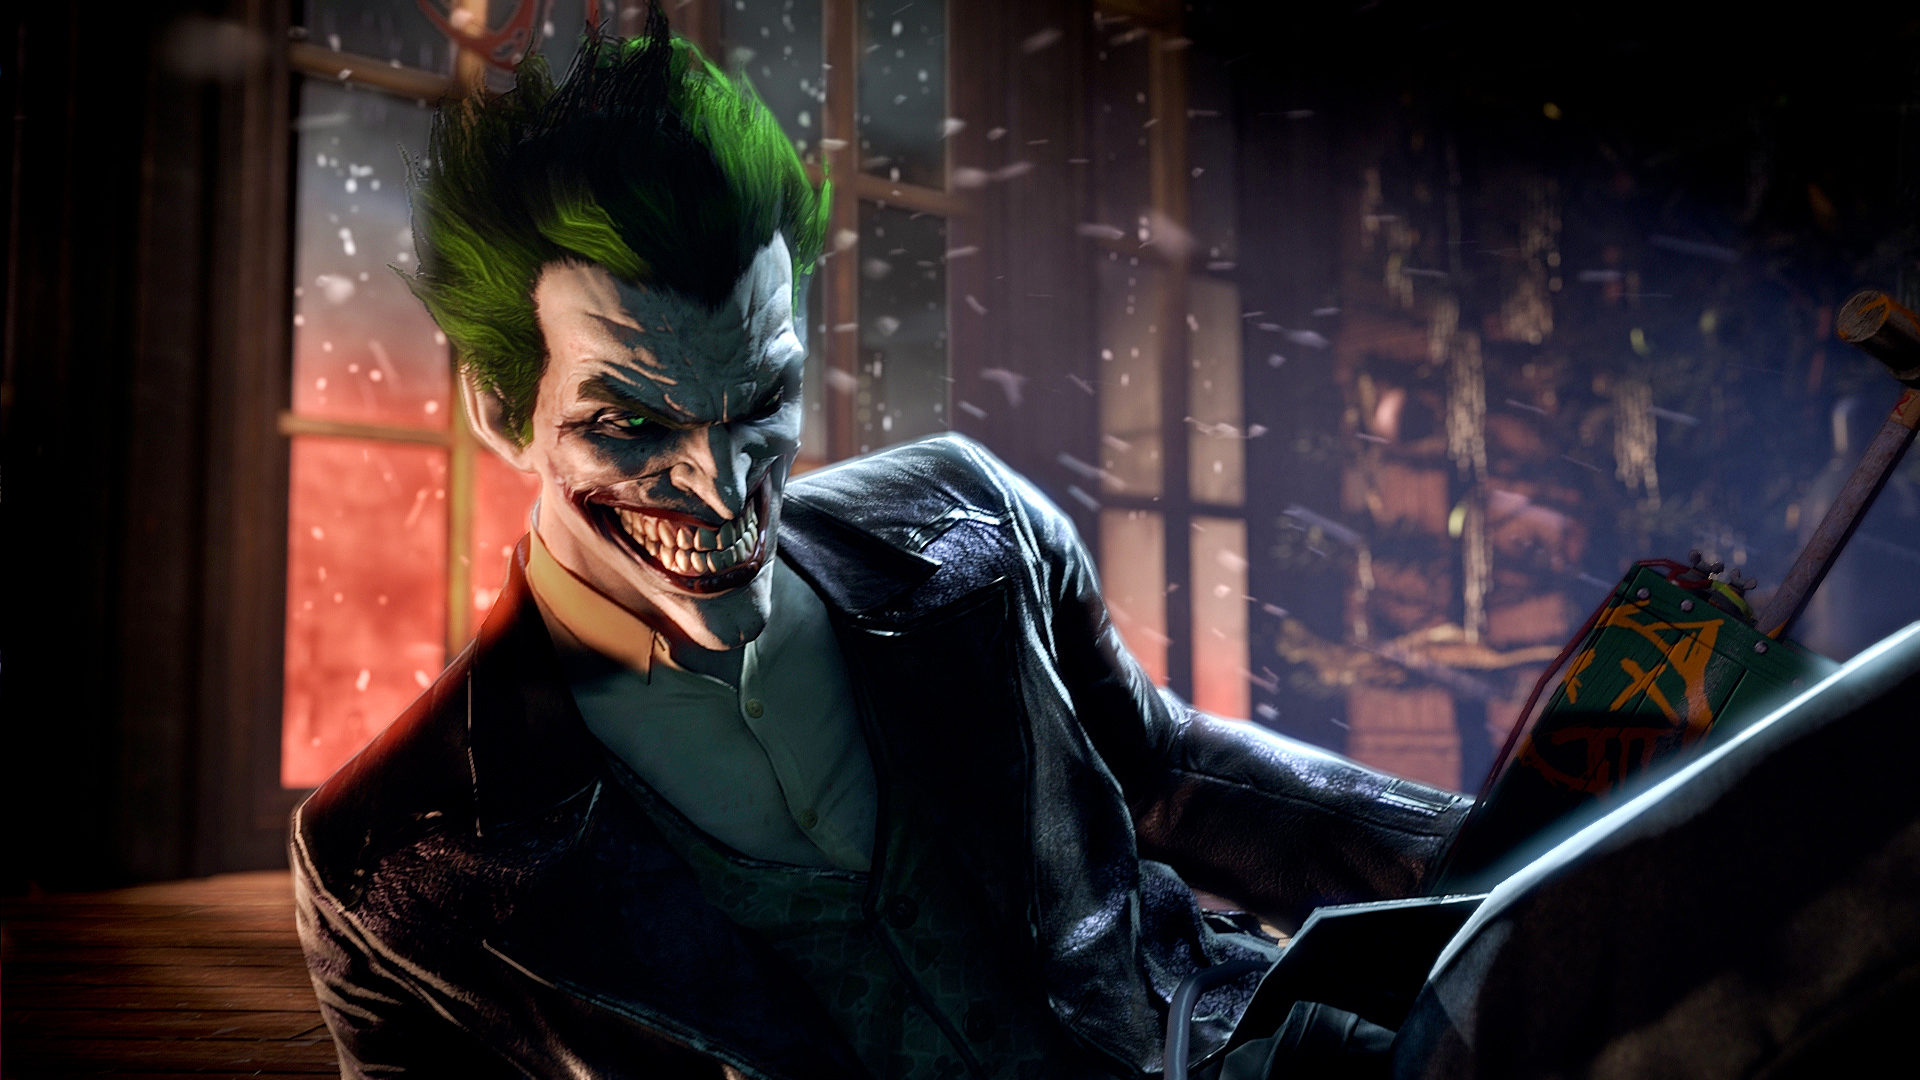 Batman Arkham Asylum Ps3 Hd Desktop Wallpaper 1080p Wallpaper